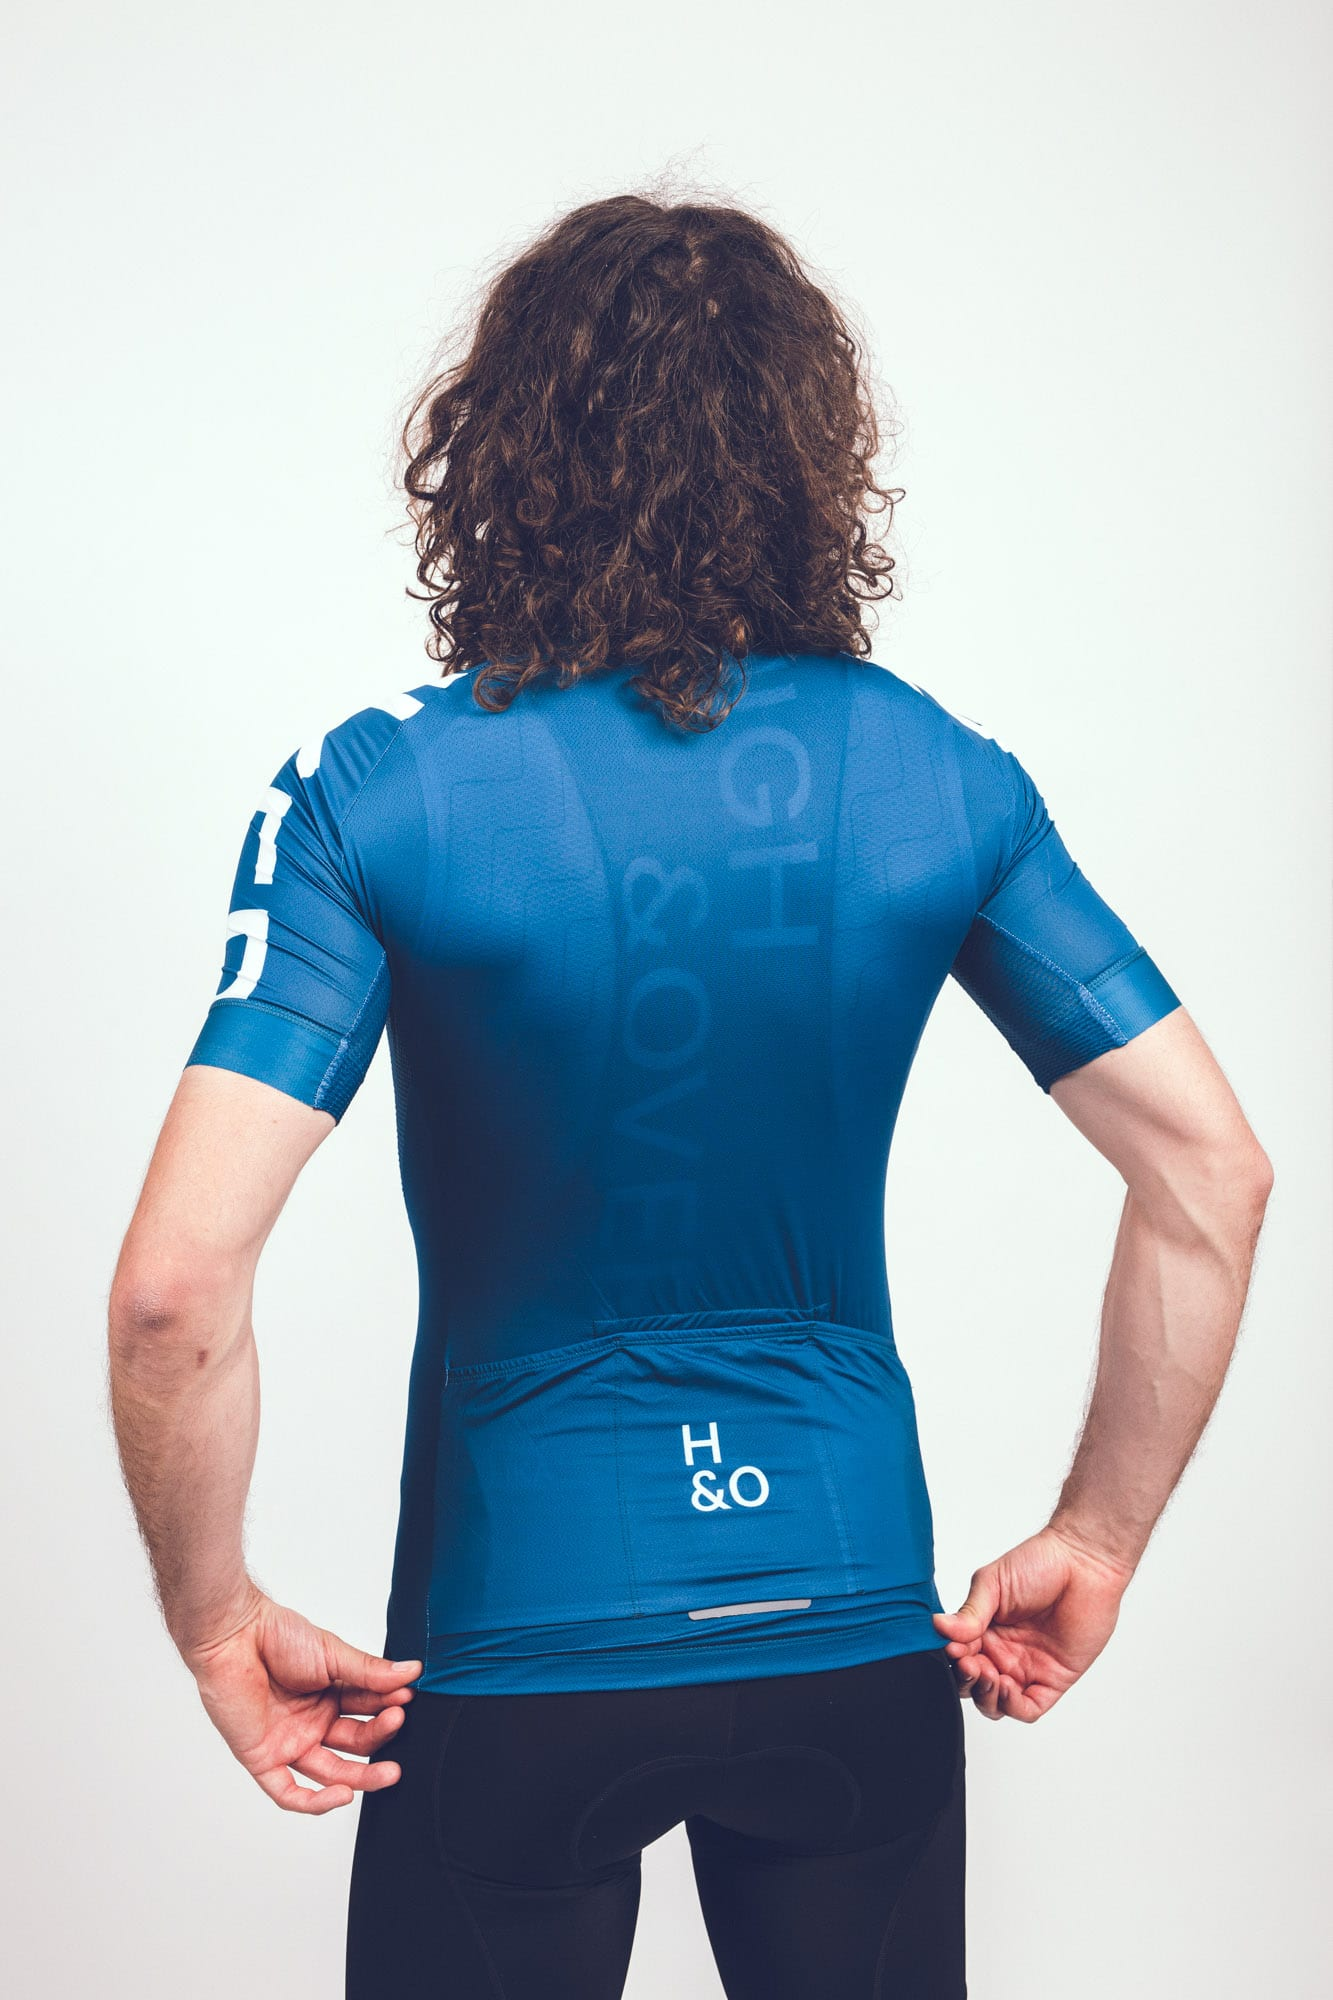 HIGH&OVER mens baltic blue cycling jersey